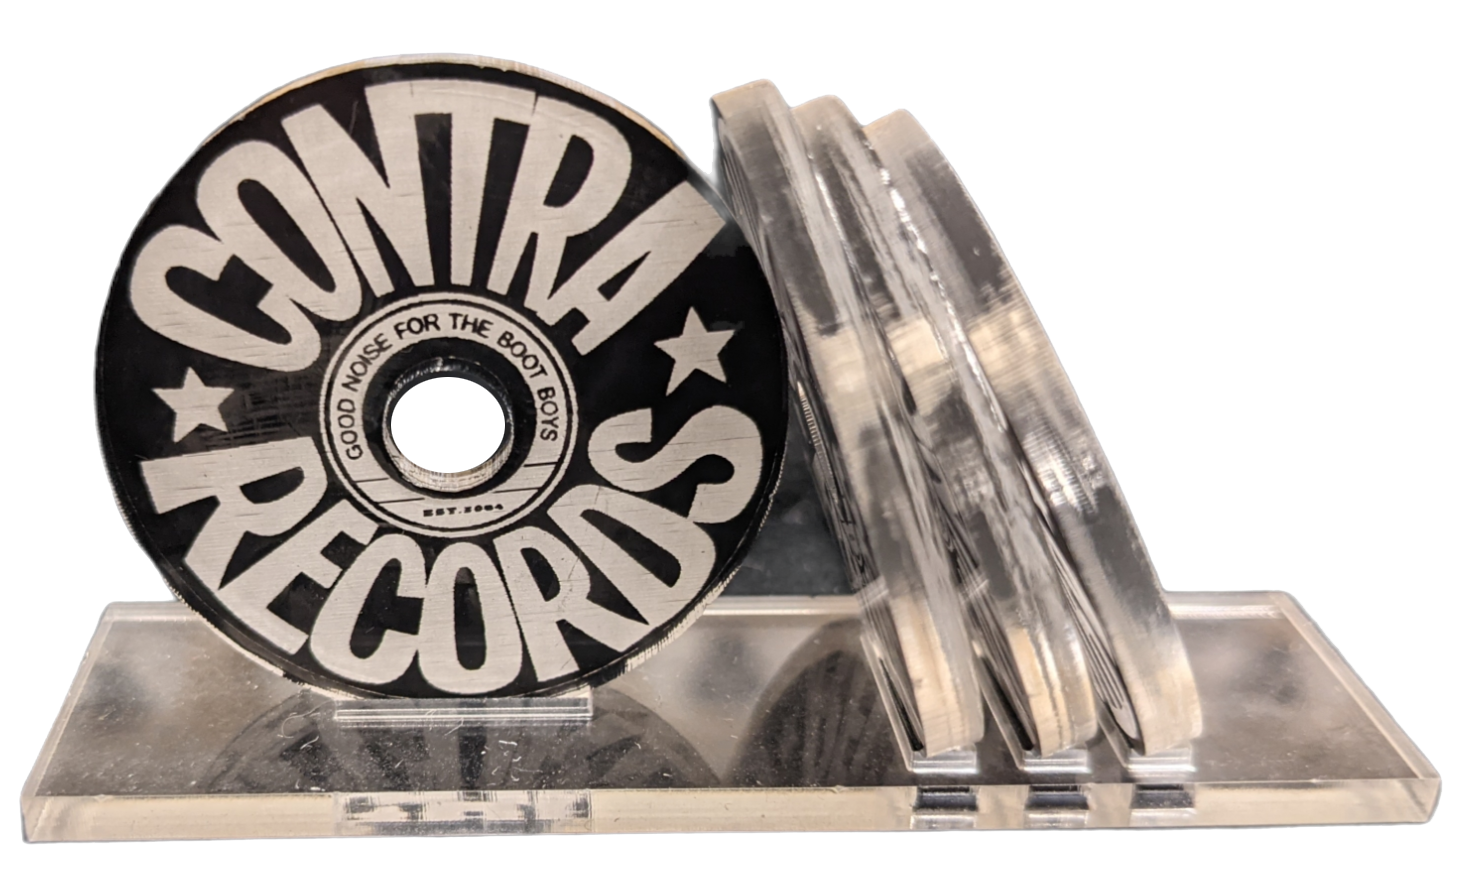 """Contra Records - """"Good Noise for the Bootboys 2018"""" - Single 45rpm Adapter clear/black"""